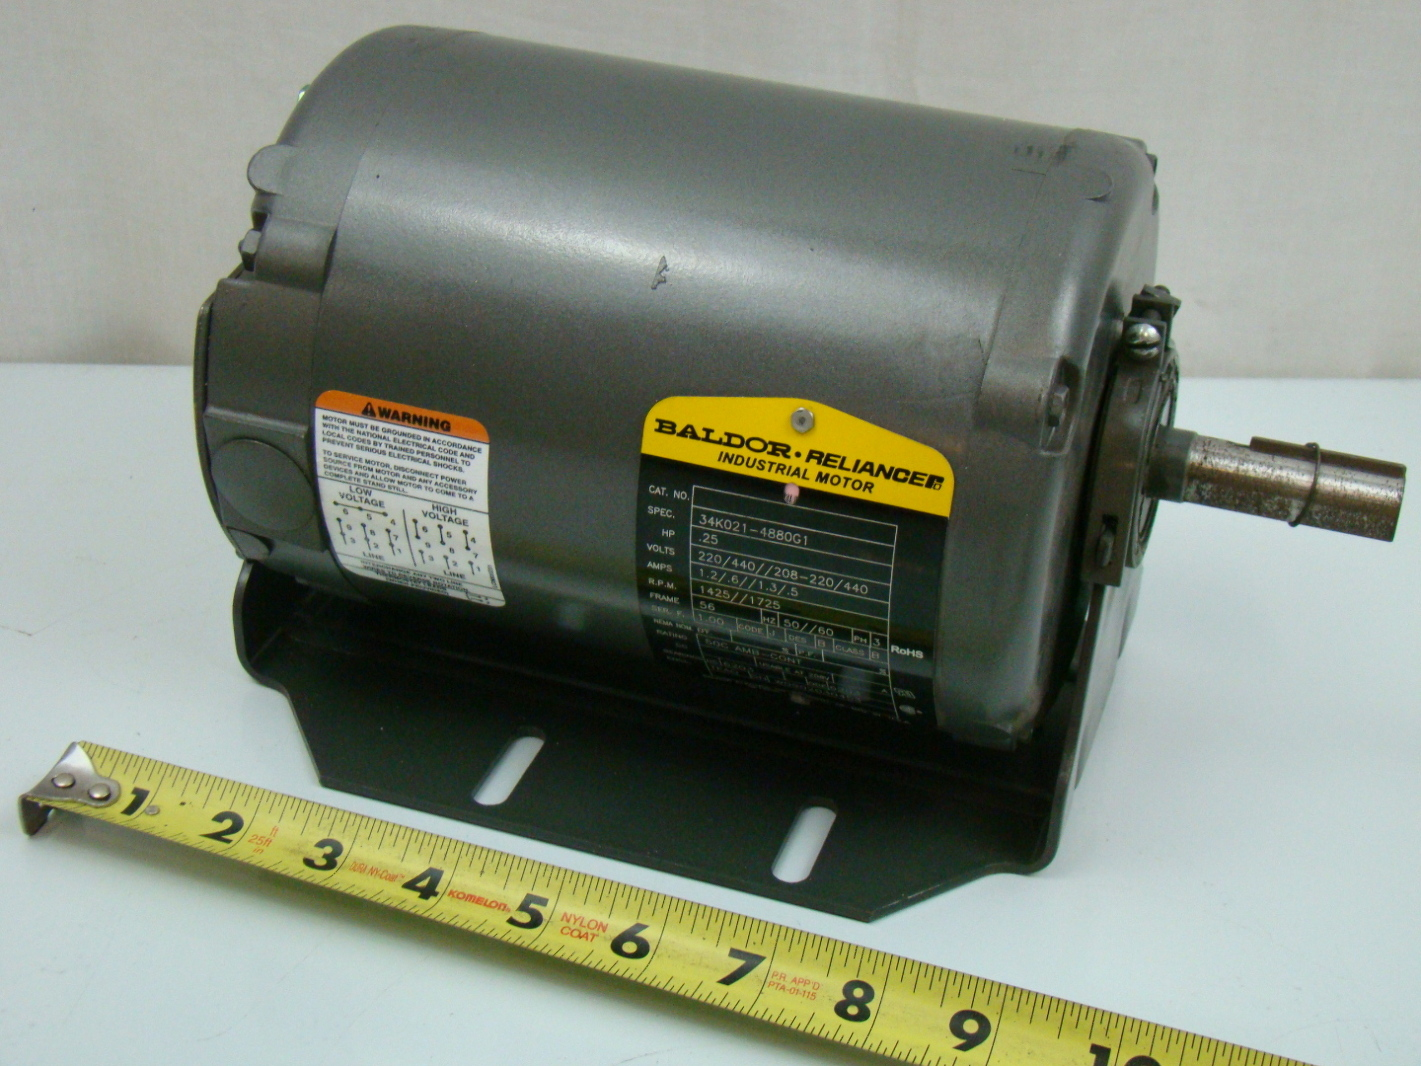 Baldor 1 4 hp 3ph electric motor 34k021 4880g1 for One horsepower electric motor